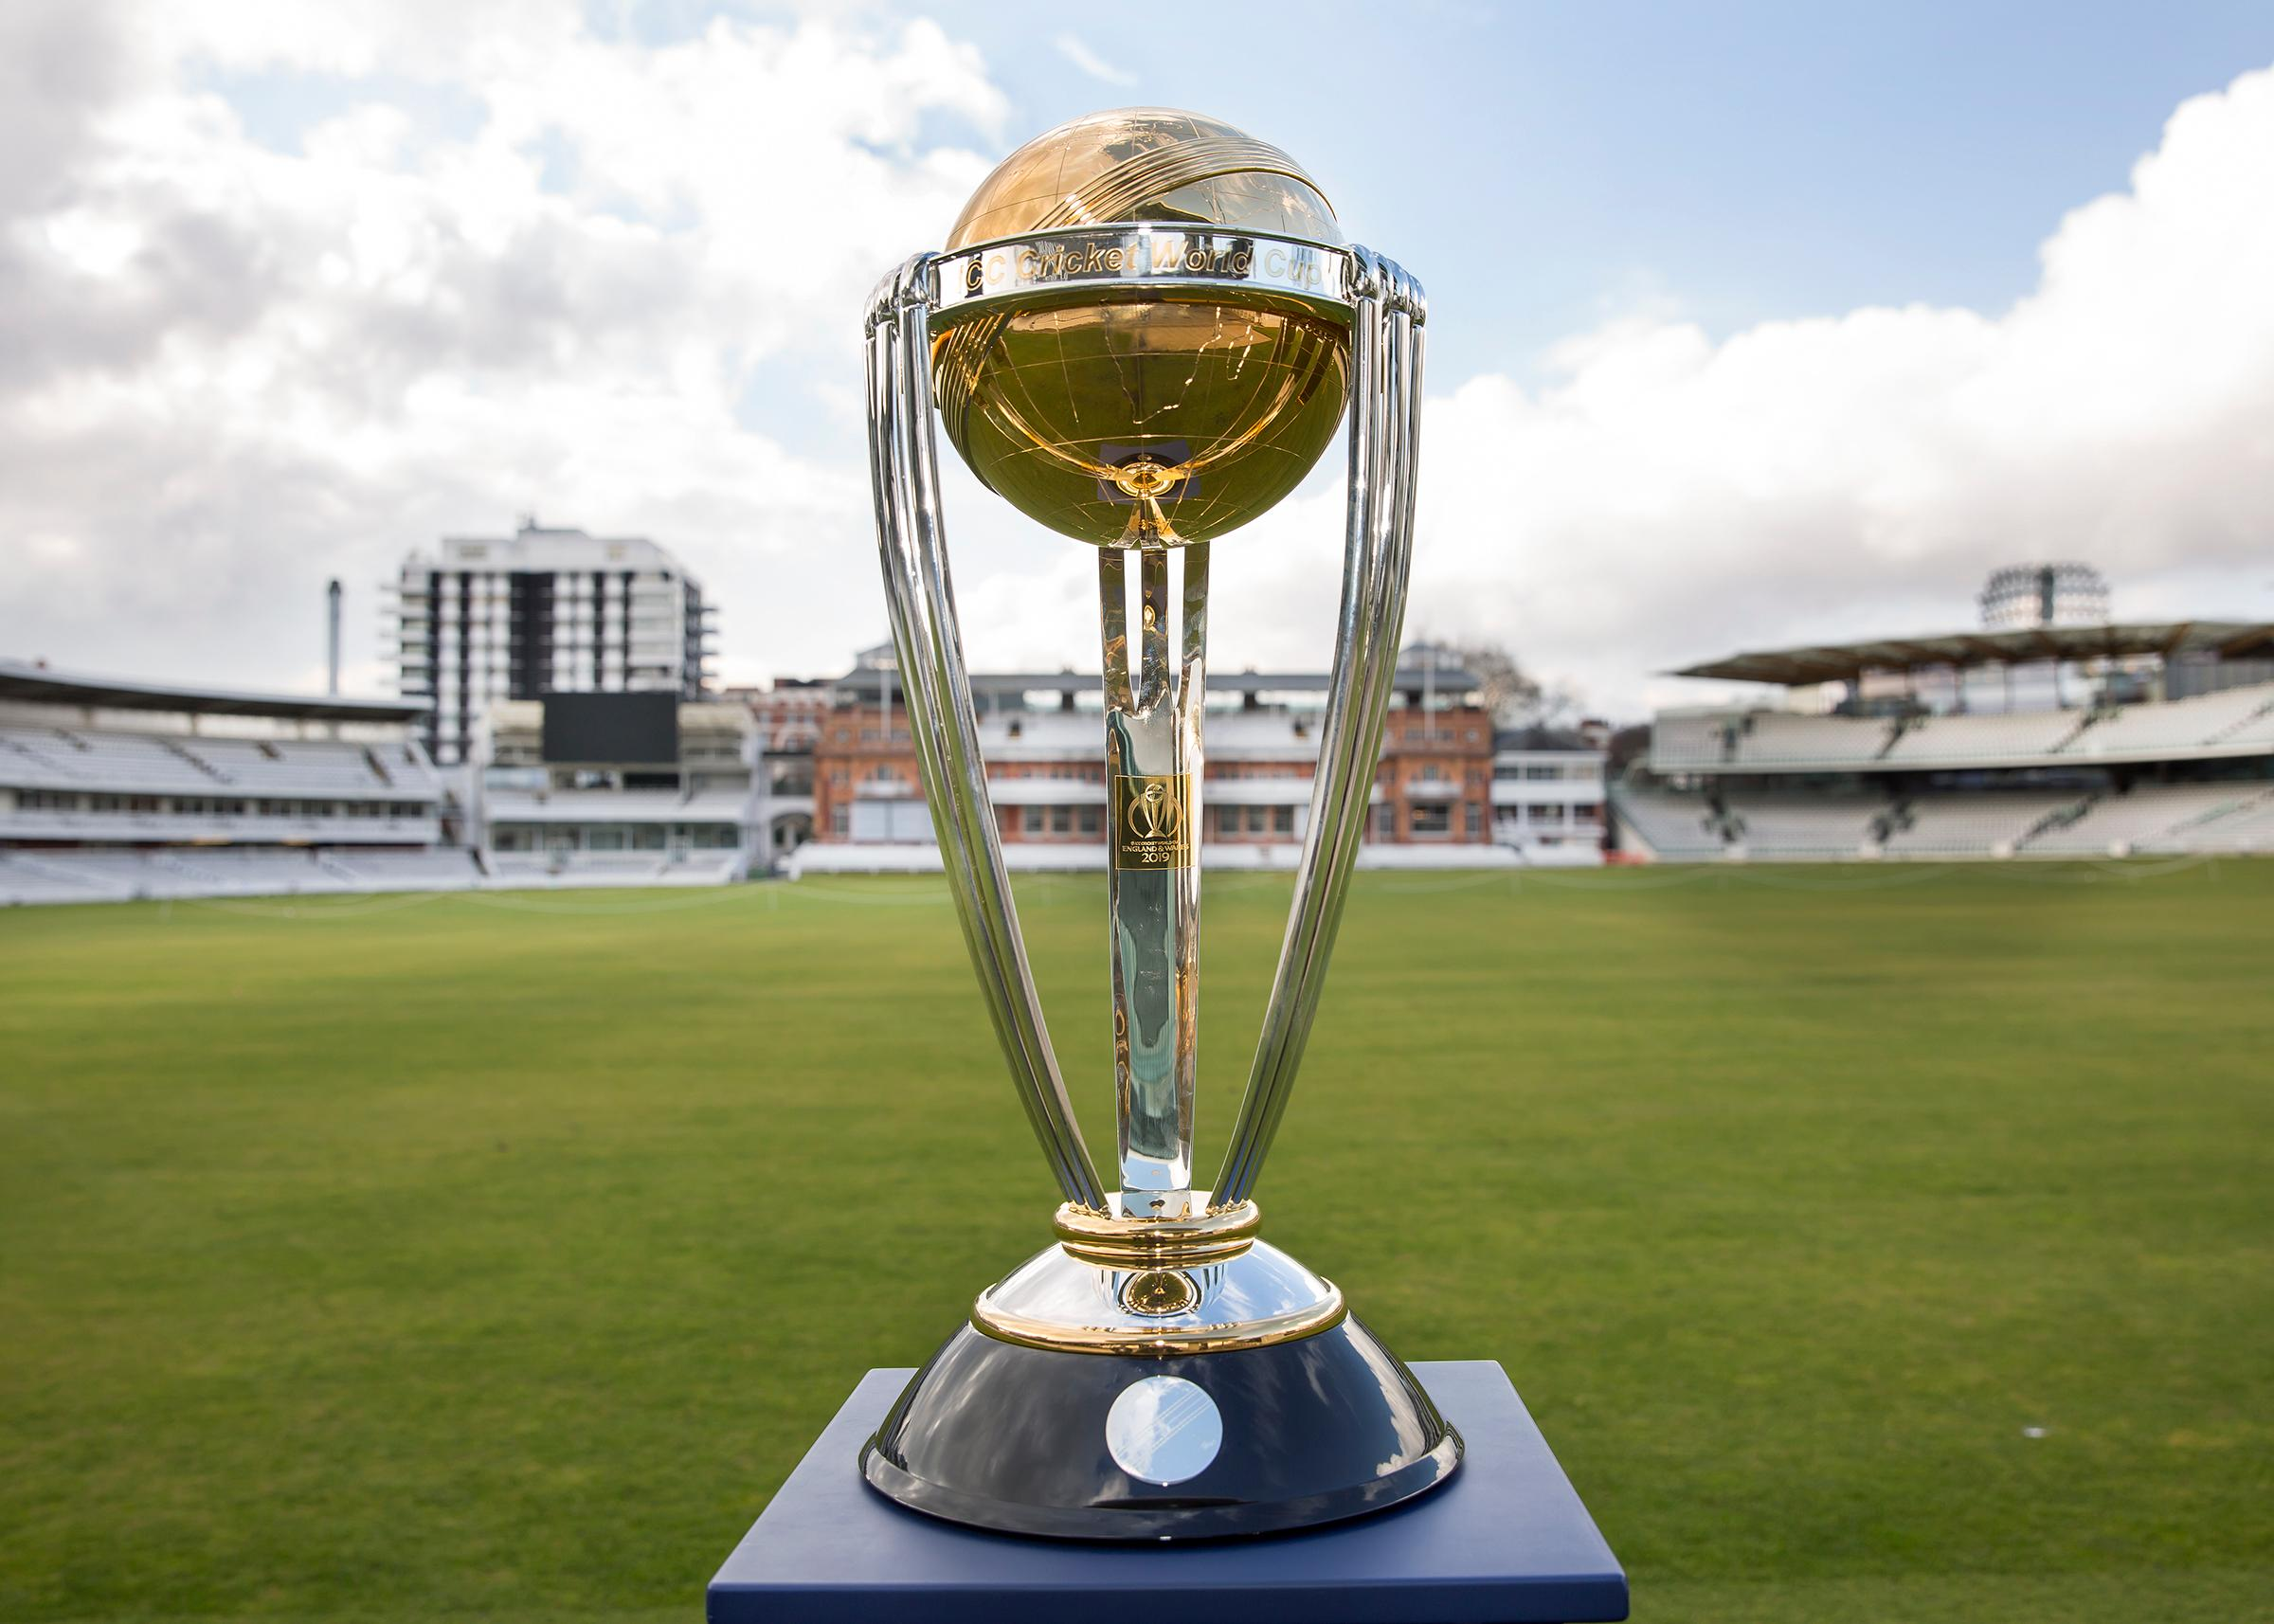 ICC partners with Bytedance for ICC Men's Cricket World Cup 2019